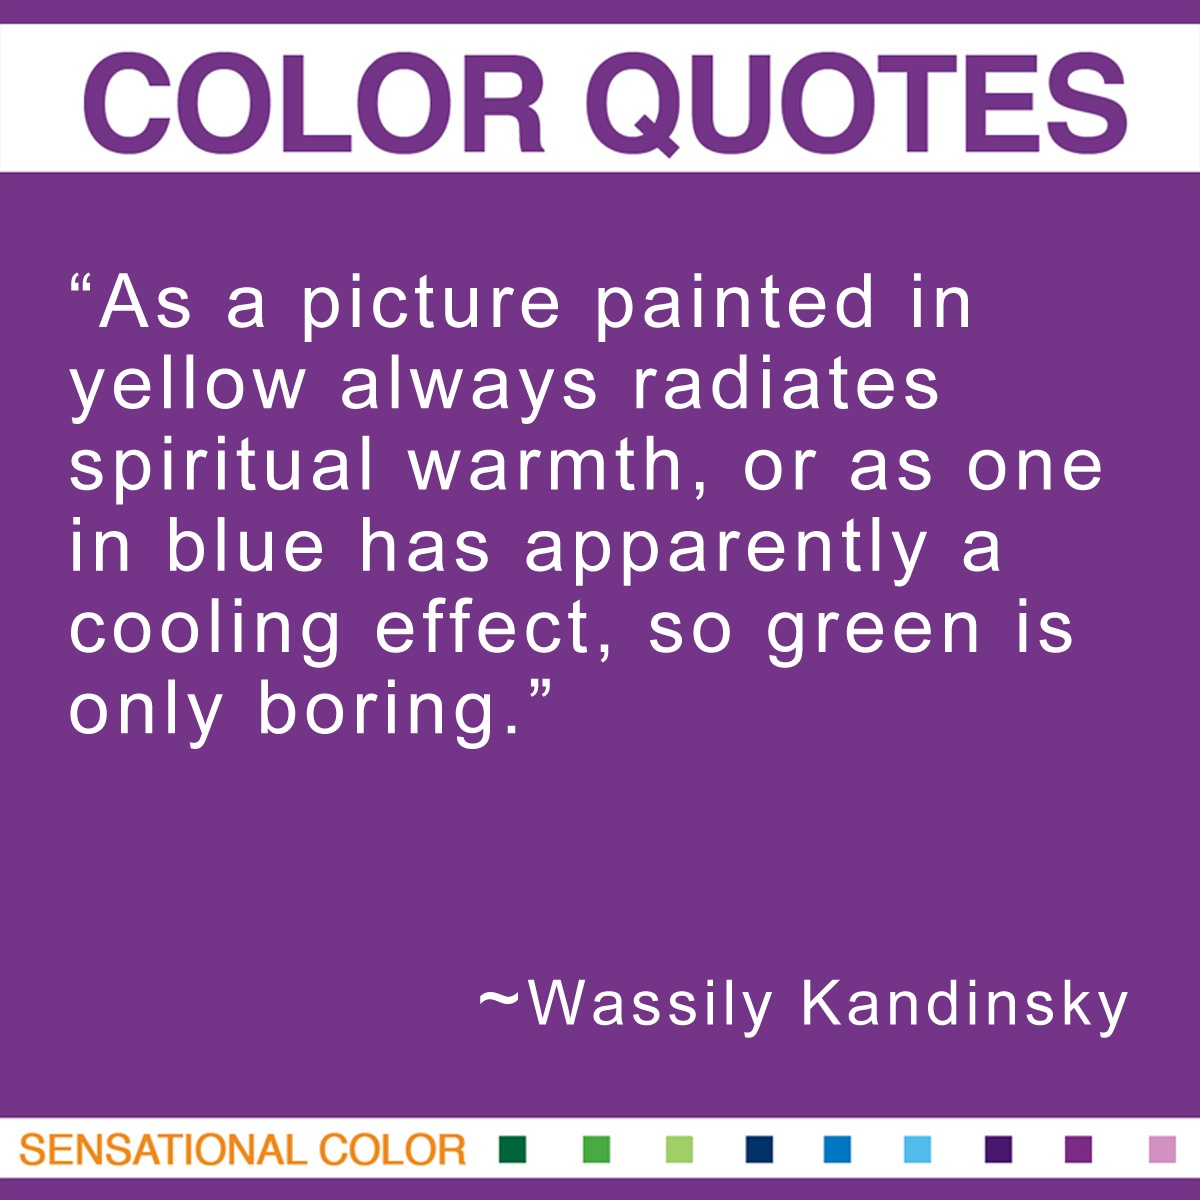 """As a picture painted in yellow always radiates spiritual warmth, or as one in blue has apparently a cooling effect, so green is only boring."" - Wassily Kandinsky"